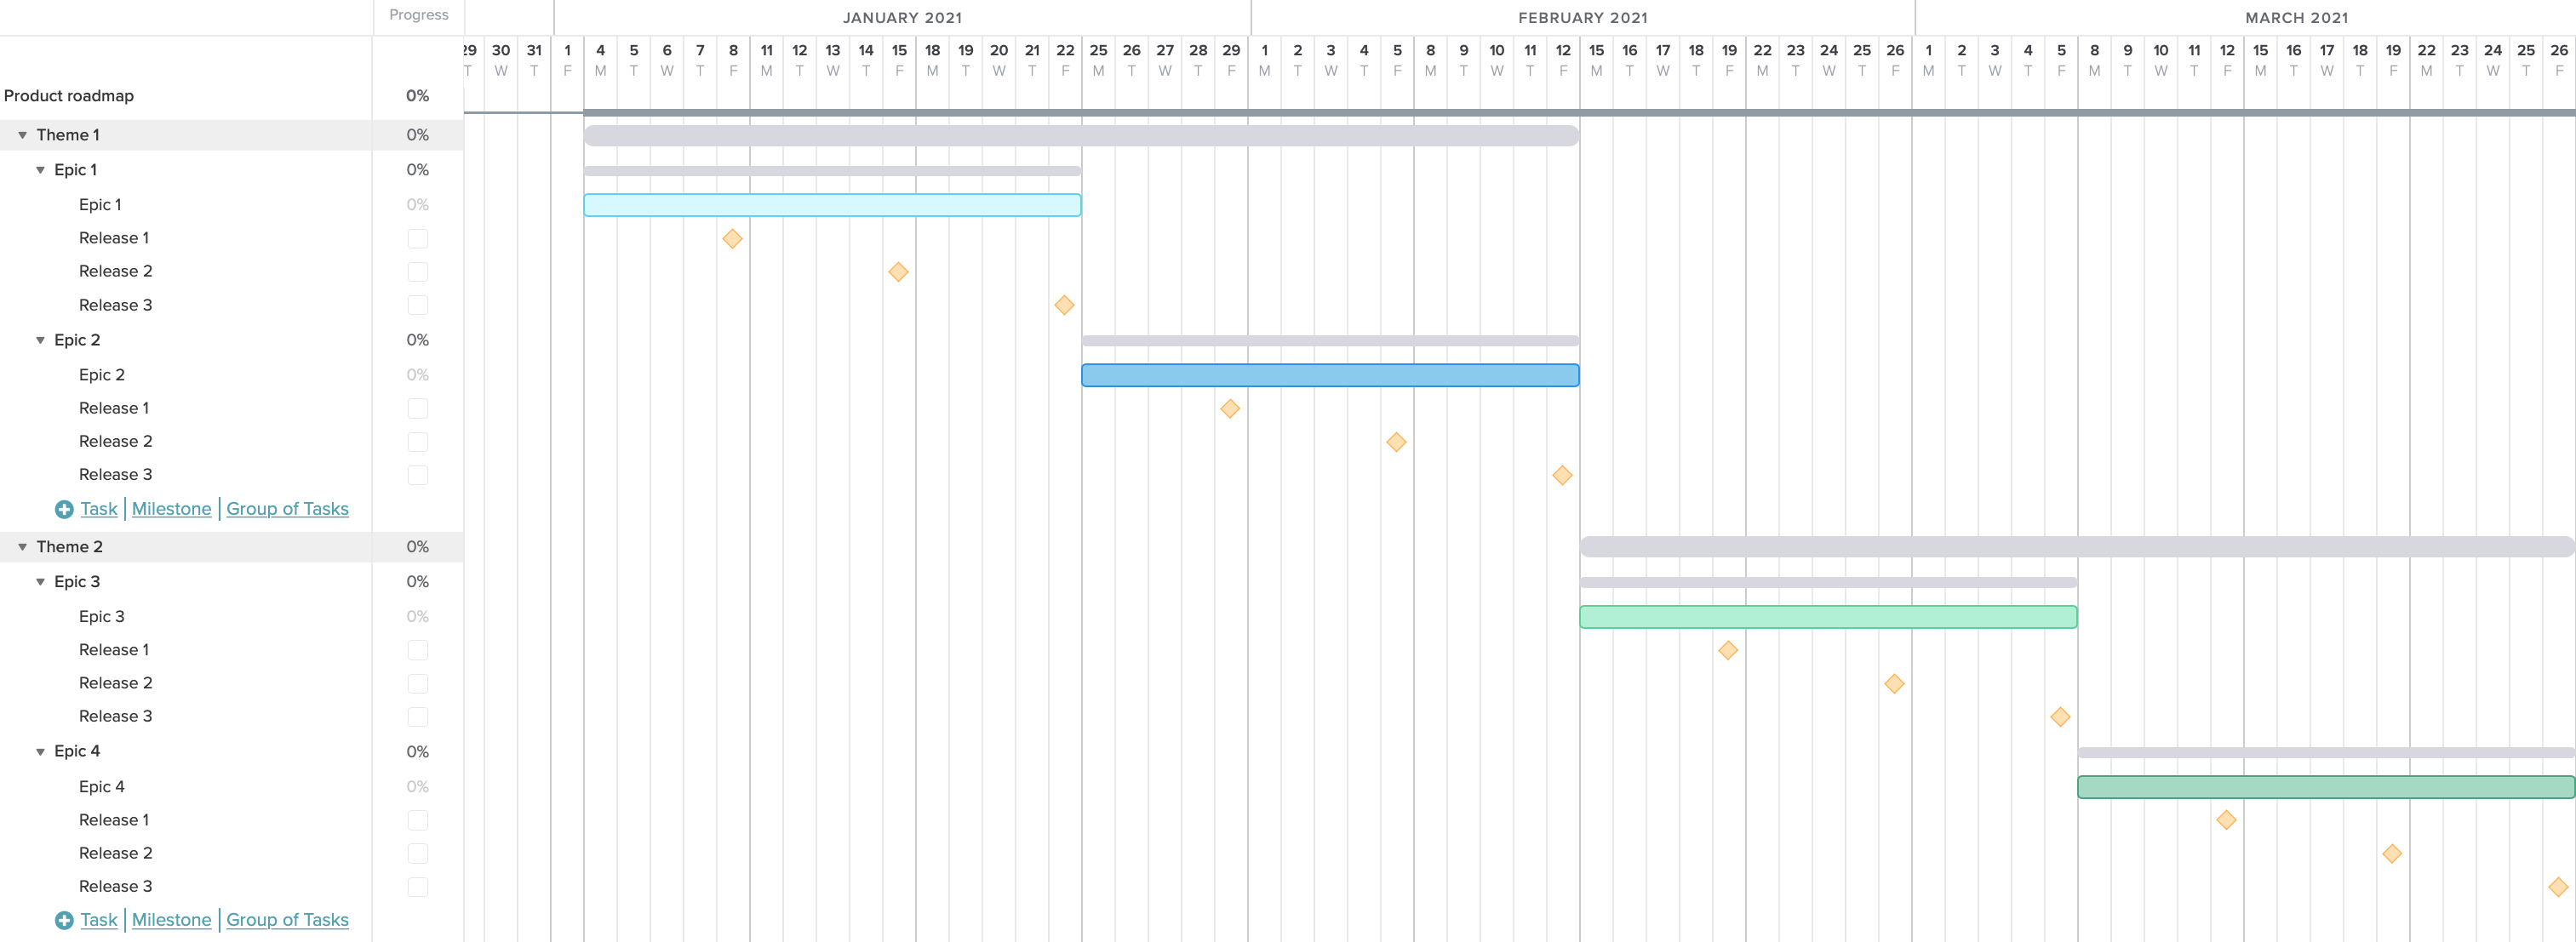 Gantt chart example of an Agile product roadmap for planning themes, epics, and releases